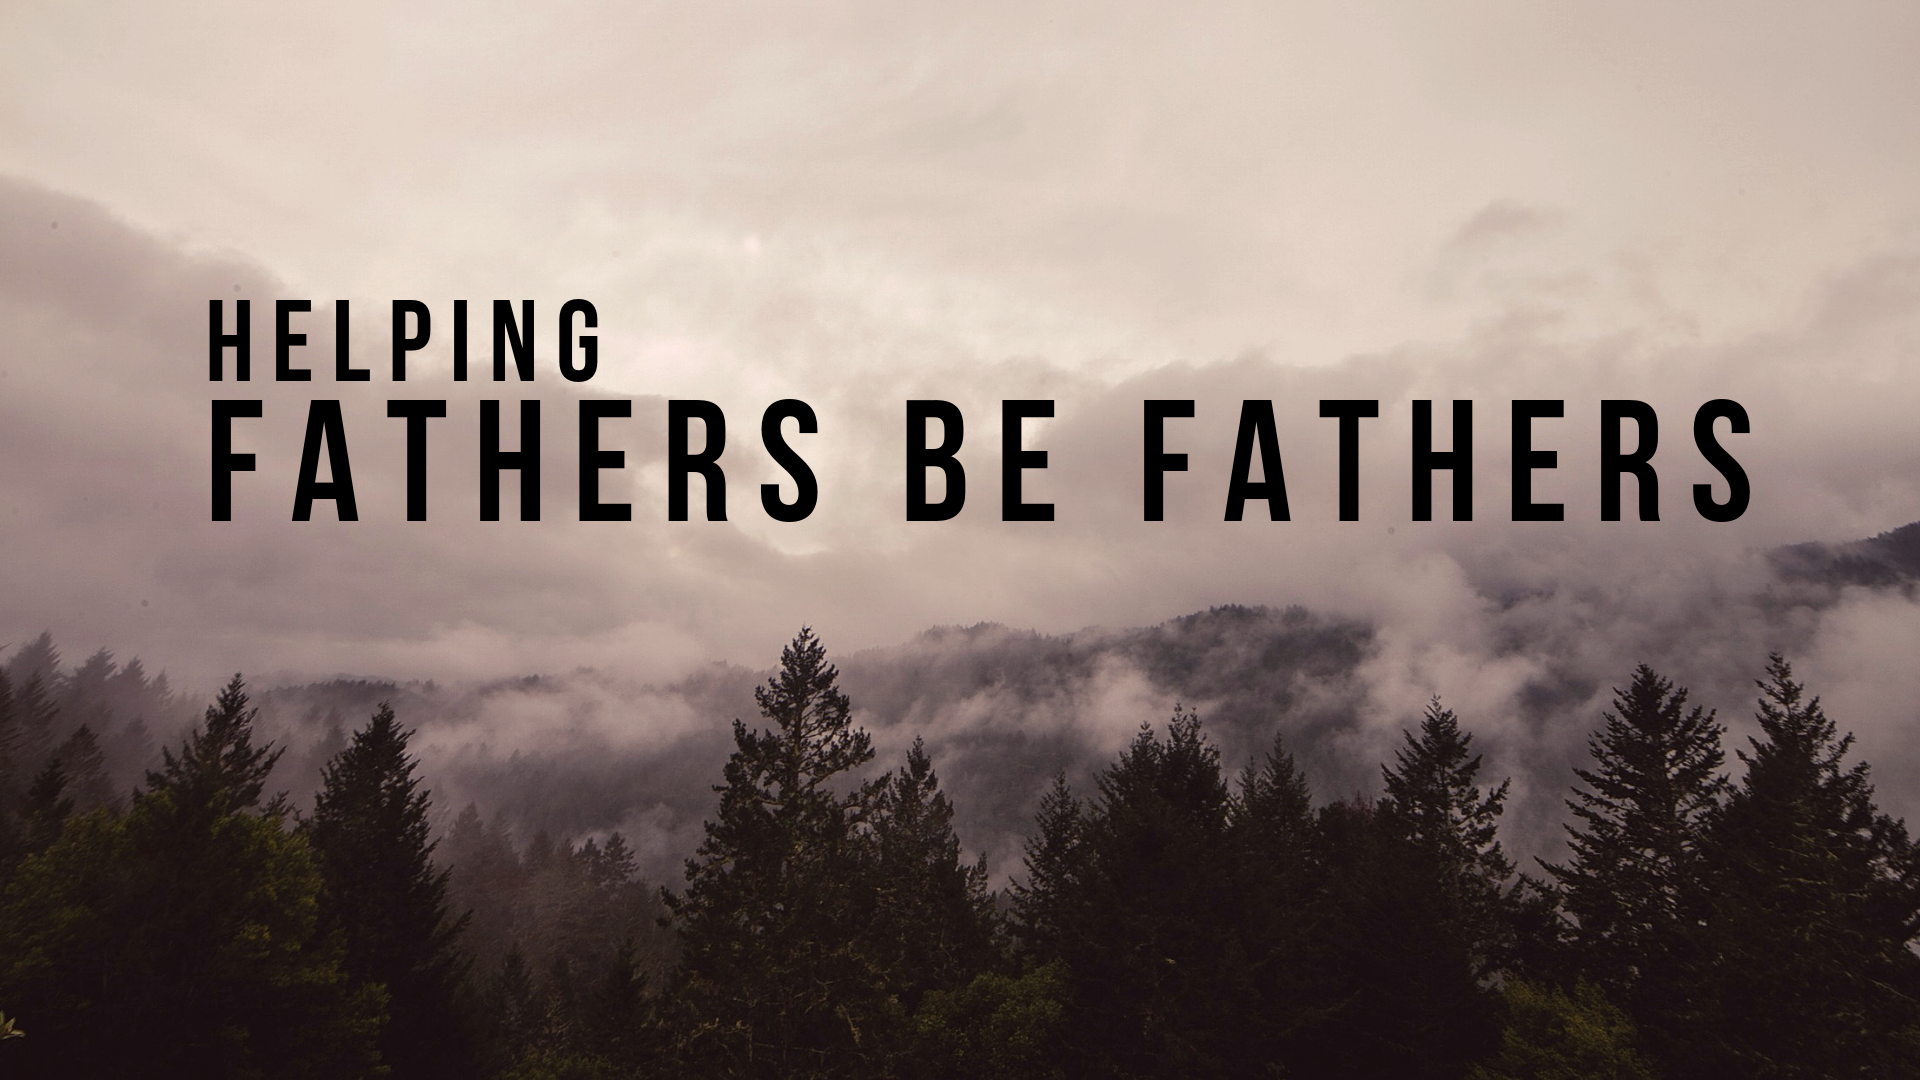 Copy of fathers ebulletin.png